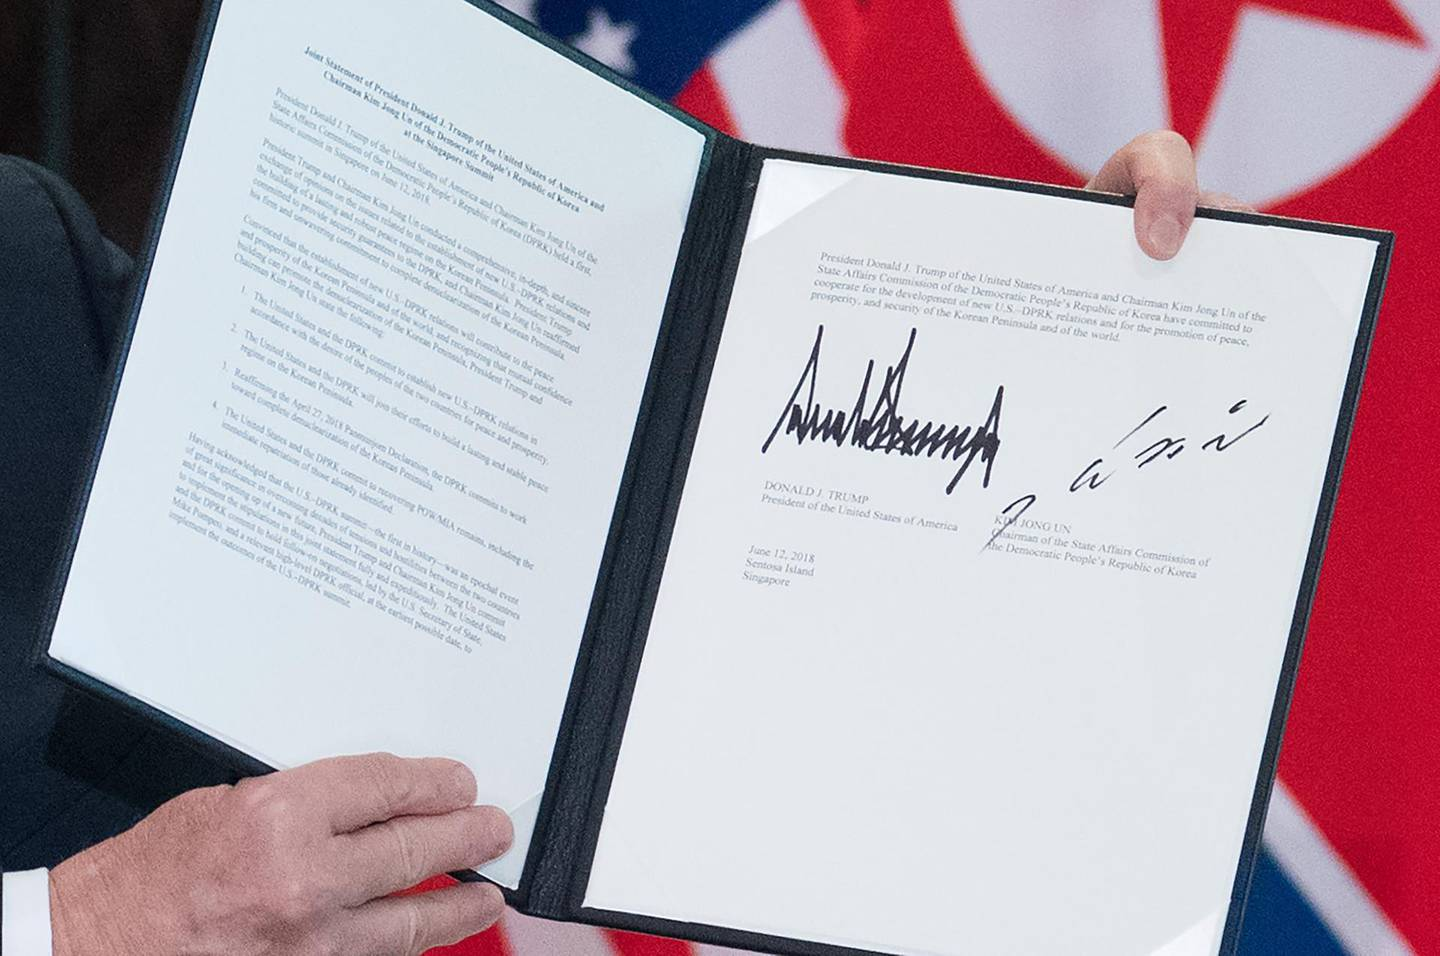 US President Donald Trump holds up a document signed by him and North Korea's leader Kim Jong Un following a signing ceremony during their historic US-North Korea summit, at the Capella Hotel on Sentosa island in Singapore on June 12, 2018.  Donald Trump and Kim Jong Un became on June 12 the first sitting US and North Korean leaders to meet, shake hands and negotiate to end a decades-old nuclear stand-off. / AFP / SAUL LOEB